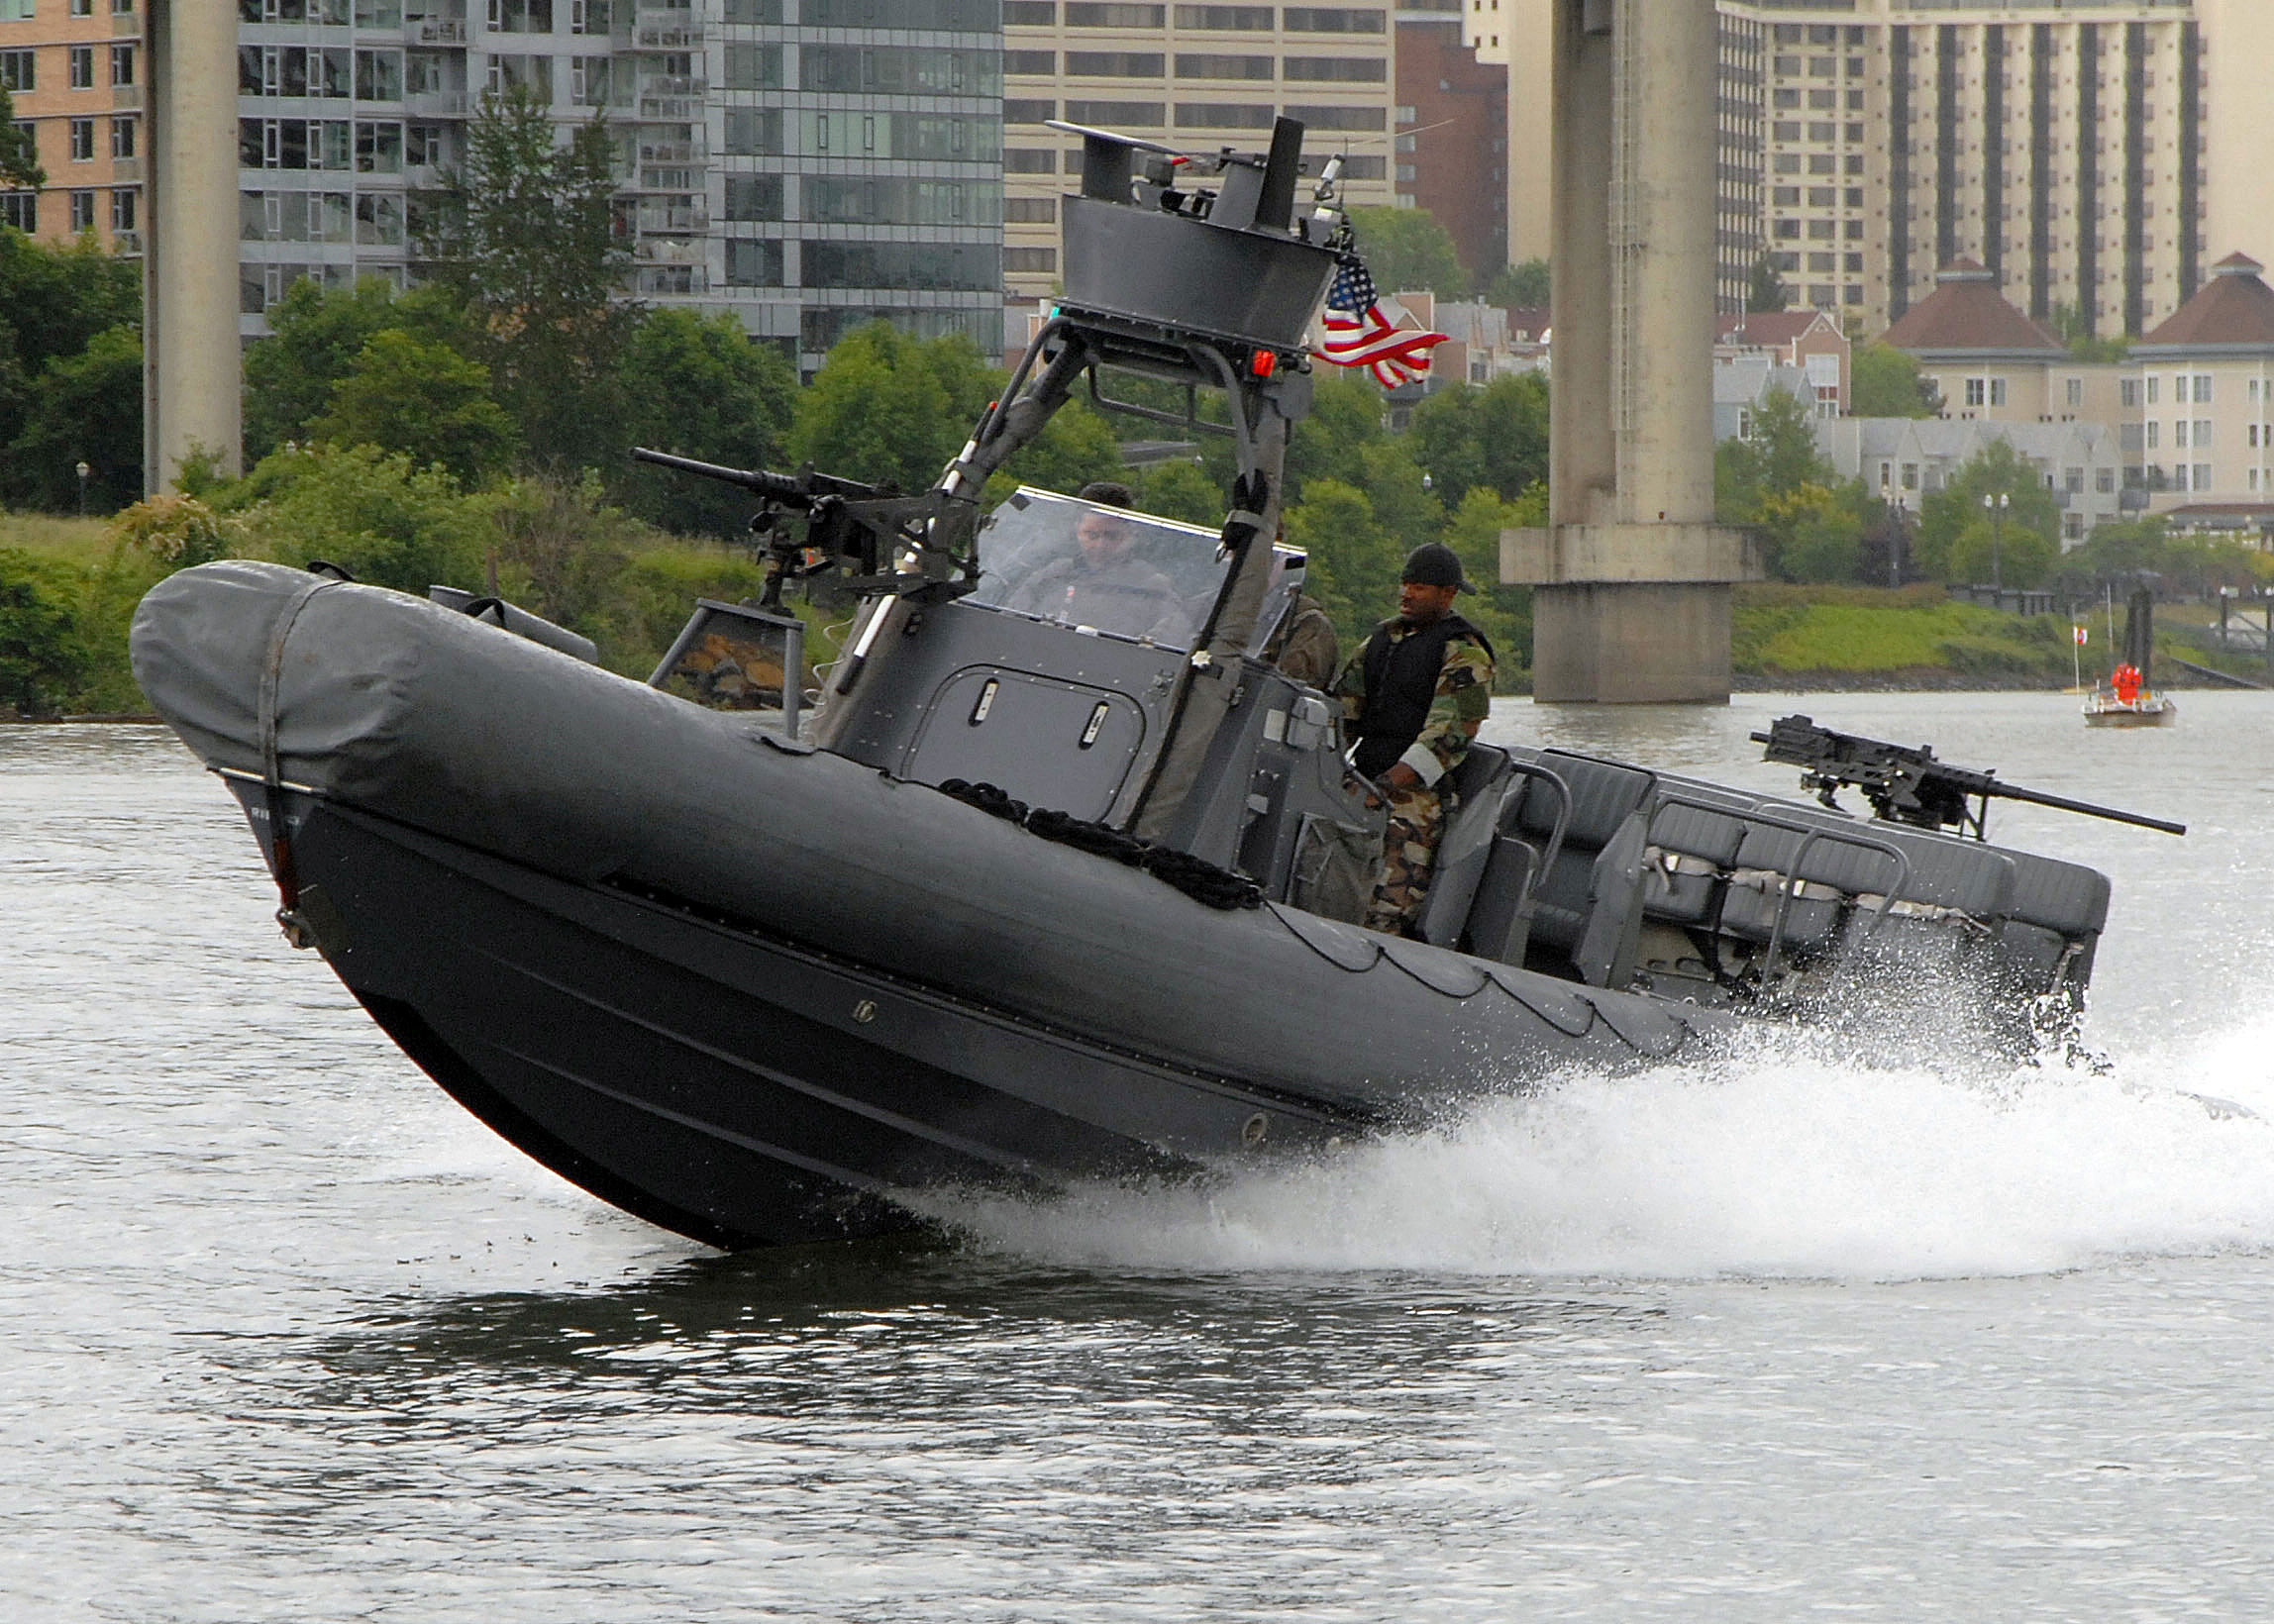 nsw-rhib-hr.jpg